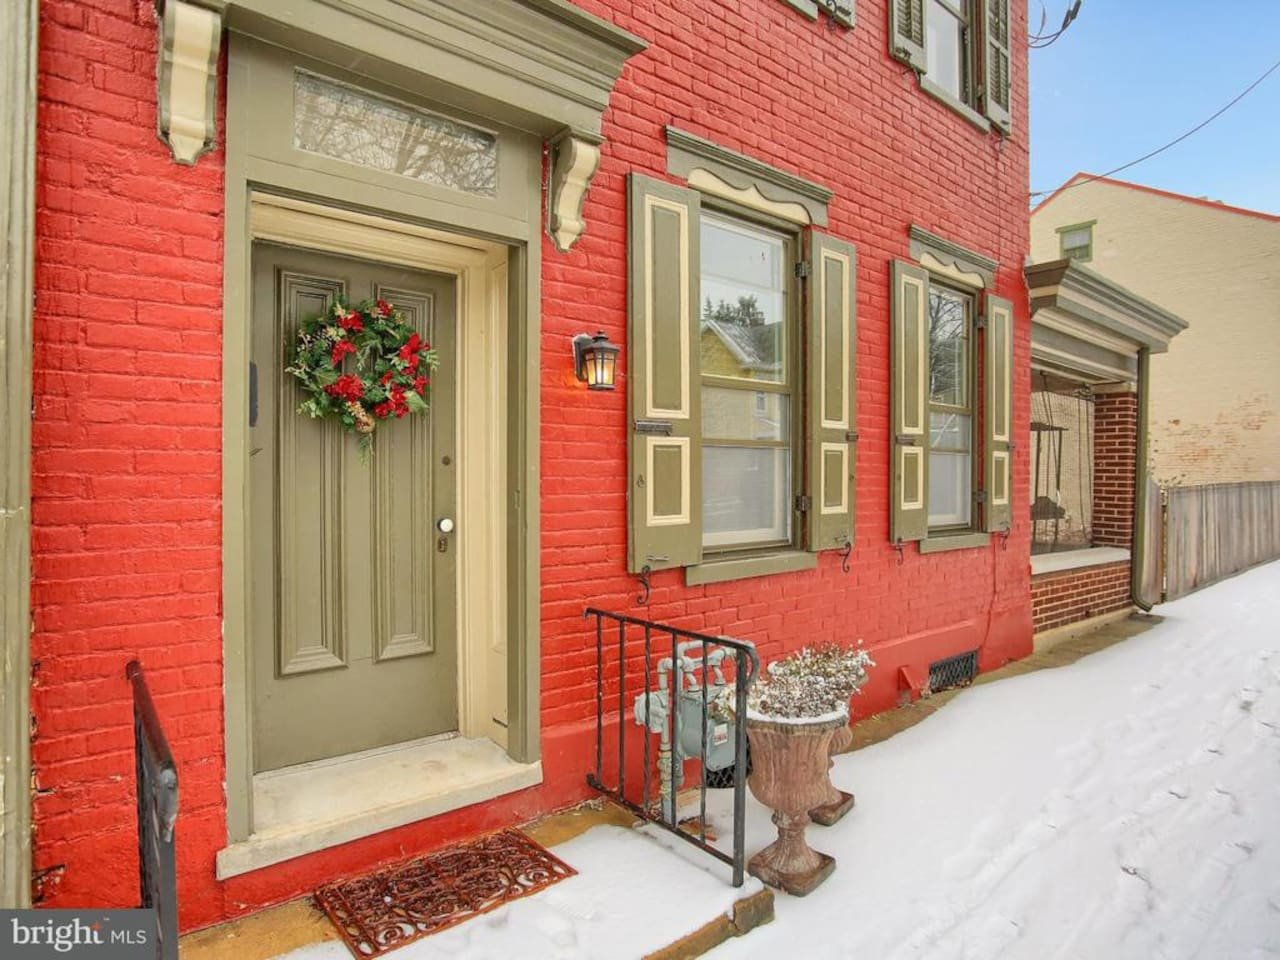 Guests enter from the front of the home. Off street parking is in the rear,next to the garages. Spring photo coming soon!